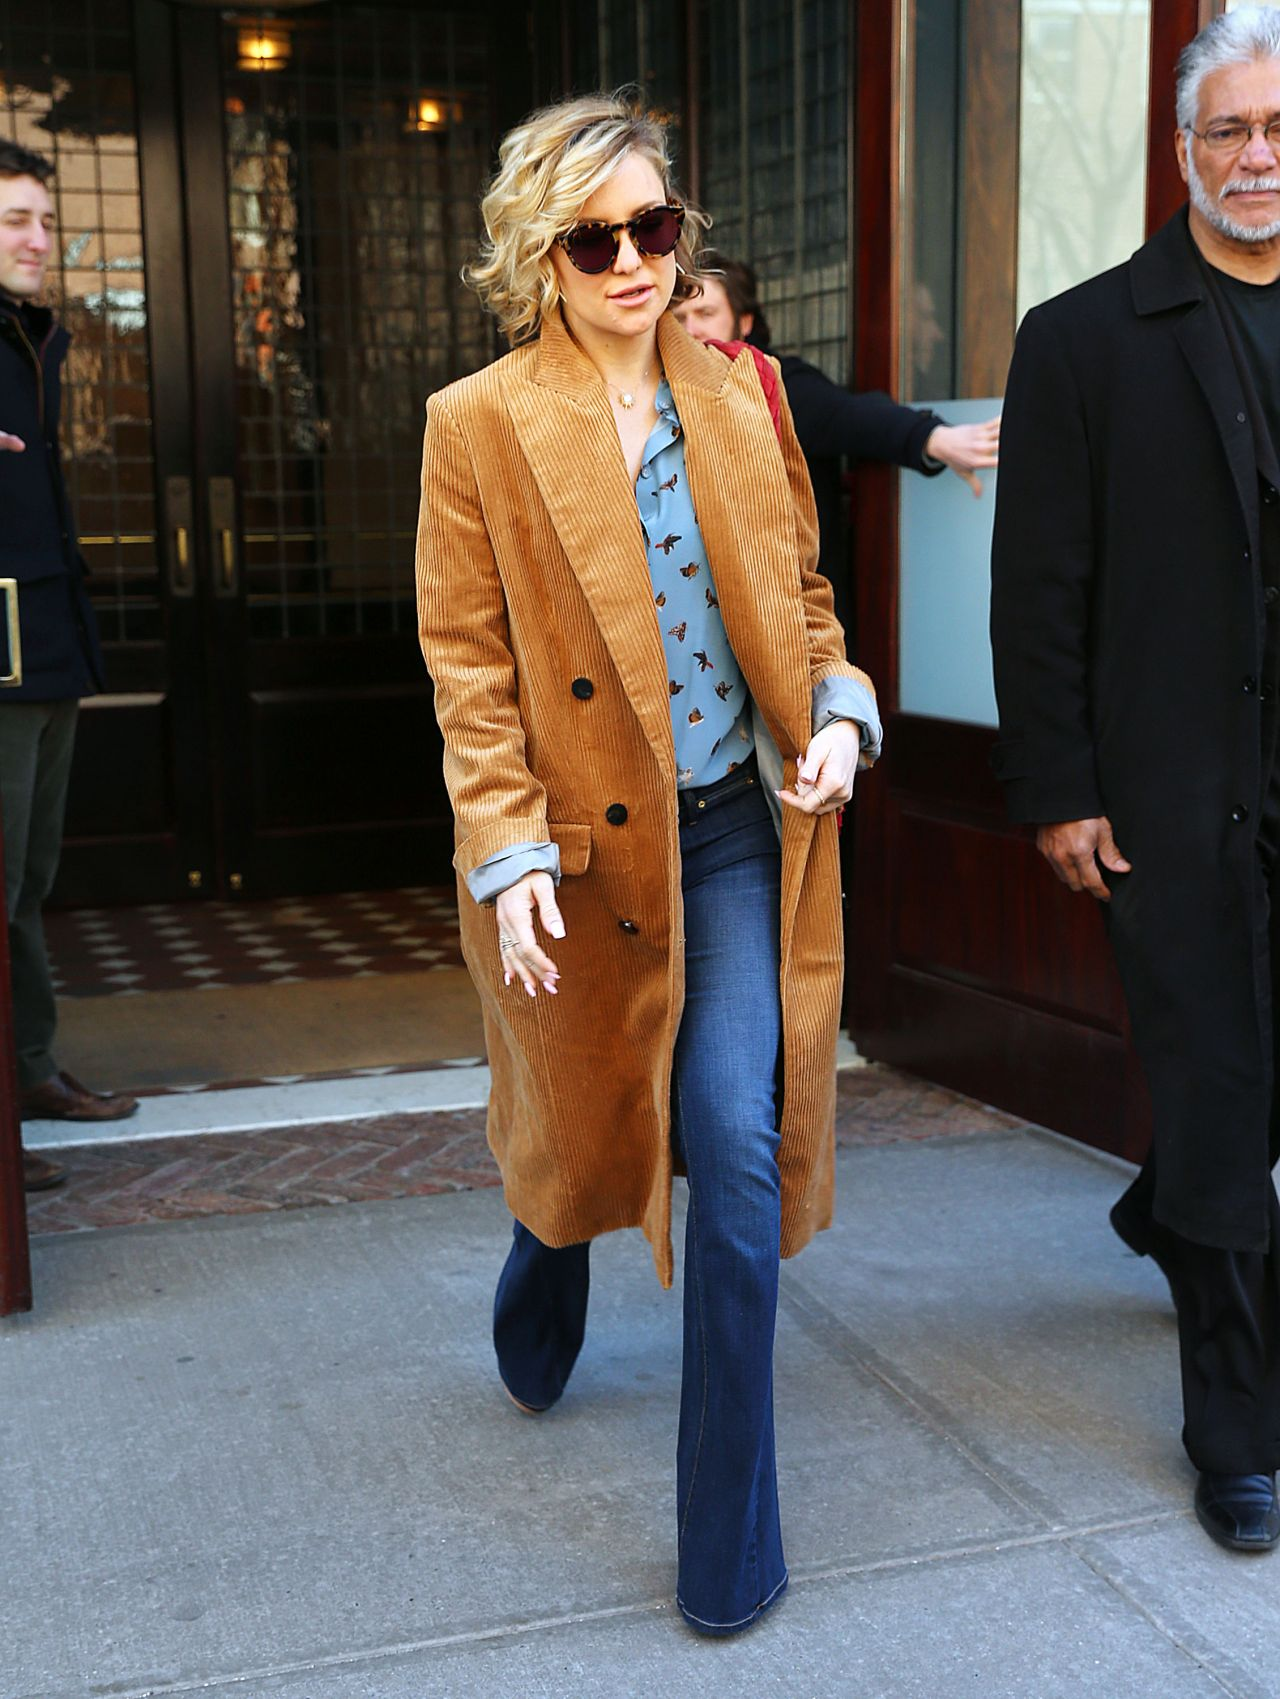 kate-hudson-street-style-leaving-her-hotel-in-new-york-city-ny-2-19-2016-5